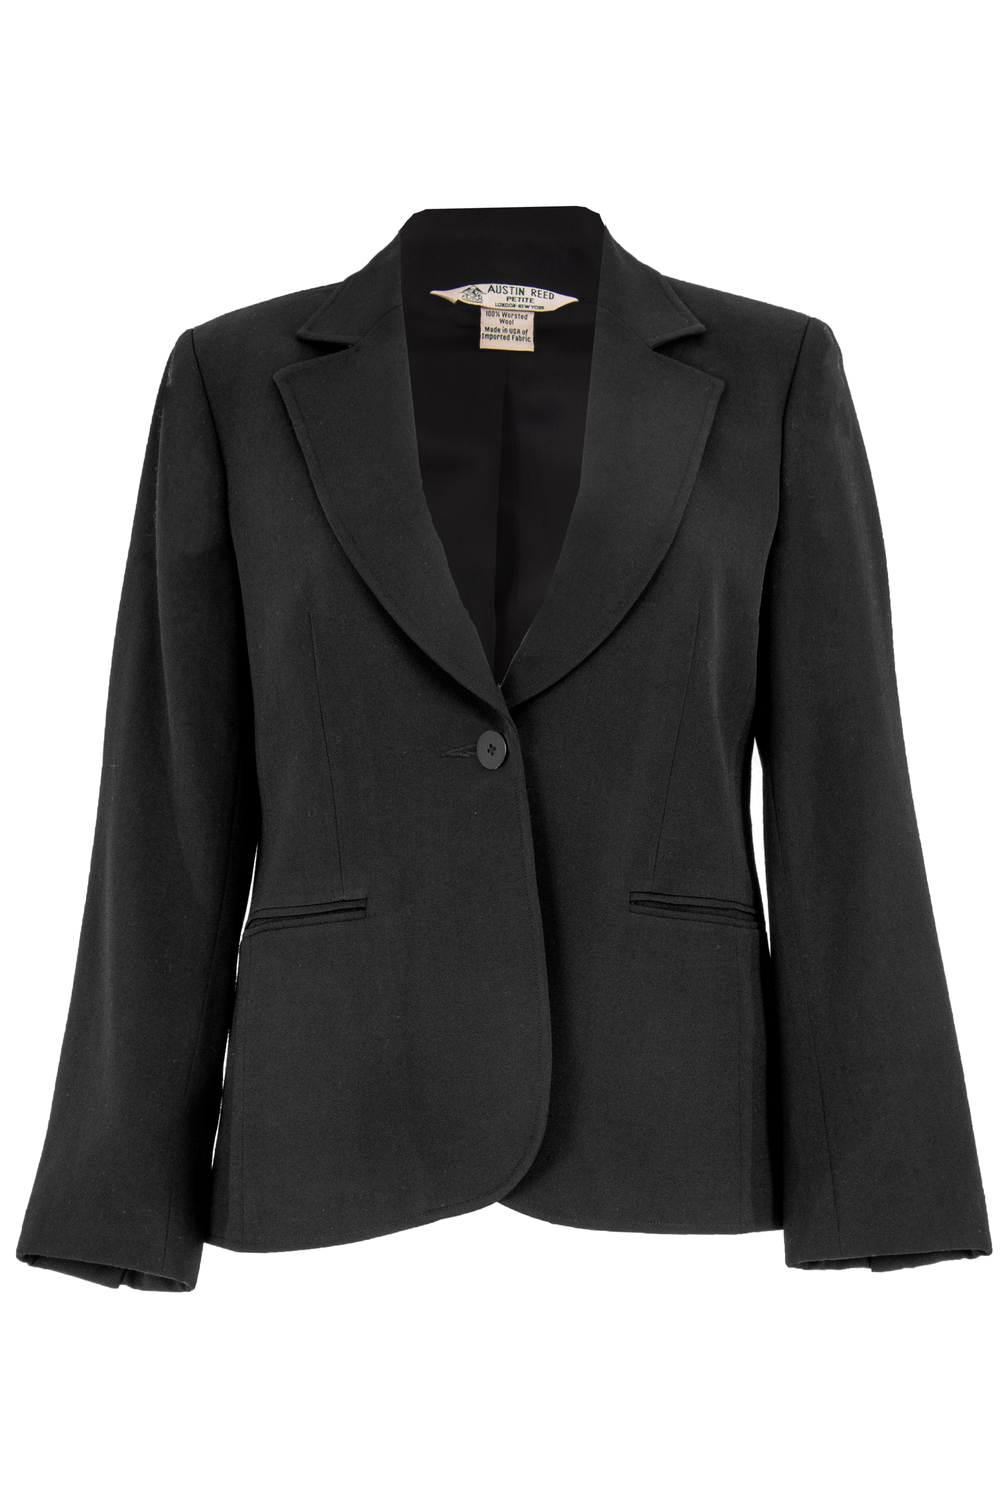 vintage black wool blazer with pointed lapel collar